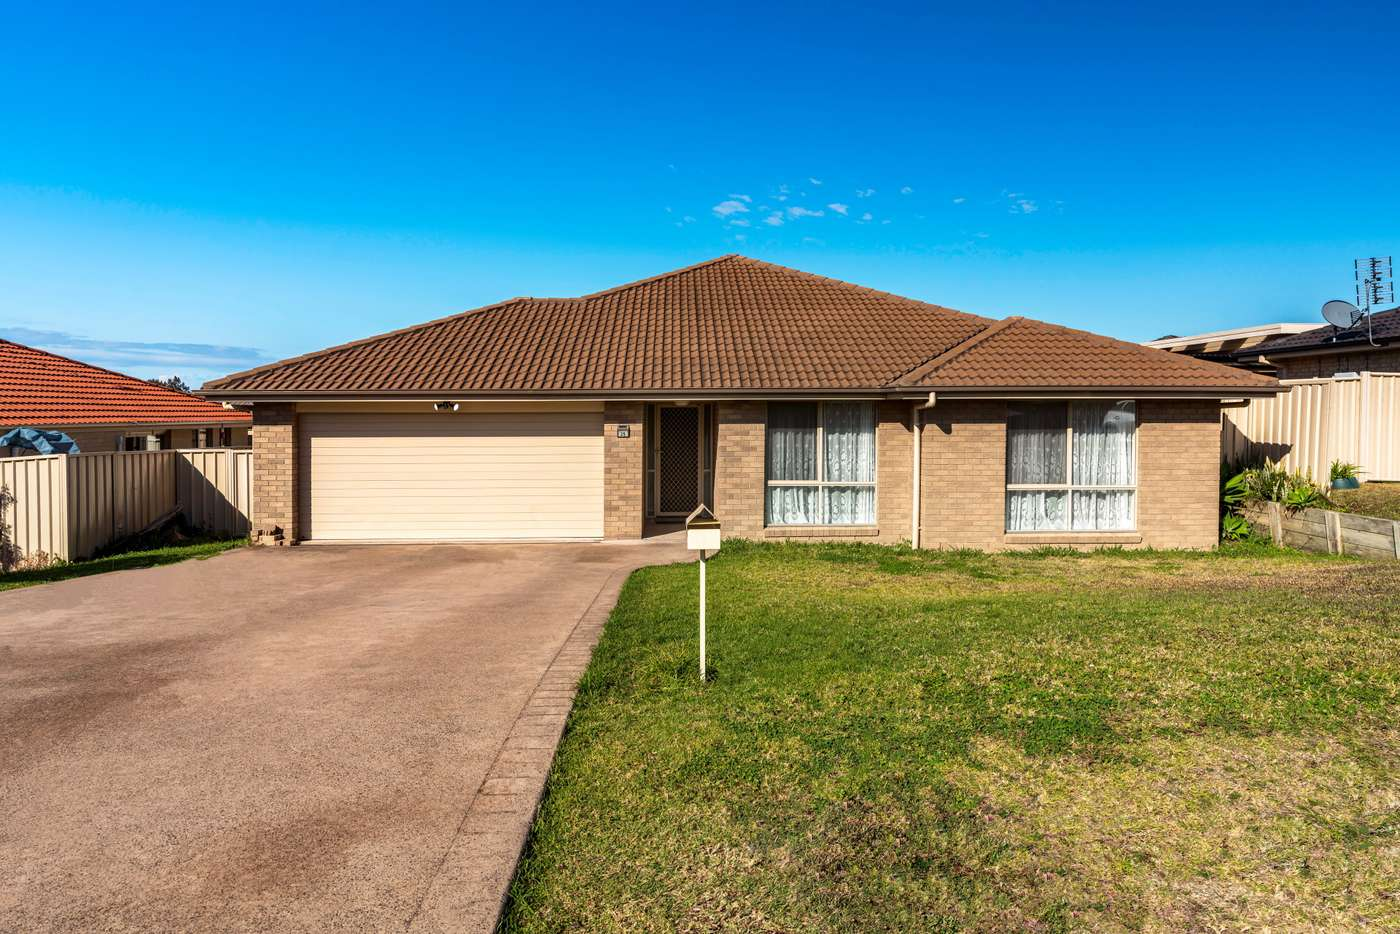 Main view of Homely house listing, 35 Sullivan Street, Worrigee, NSW 2540